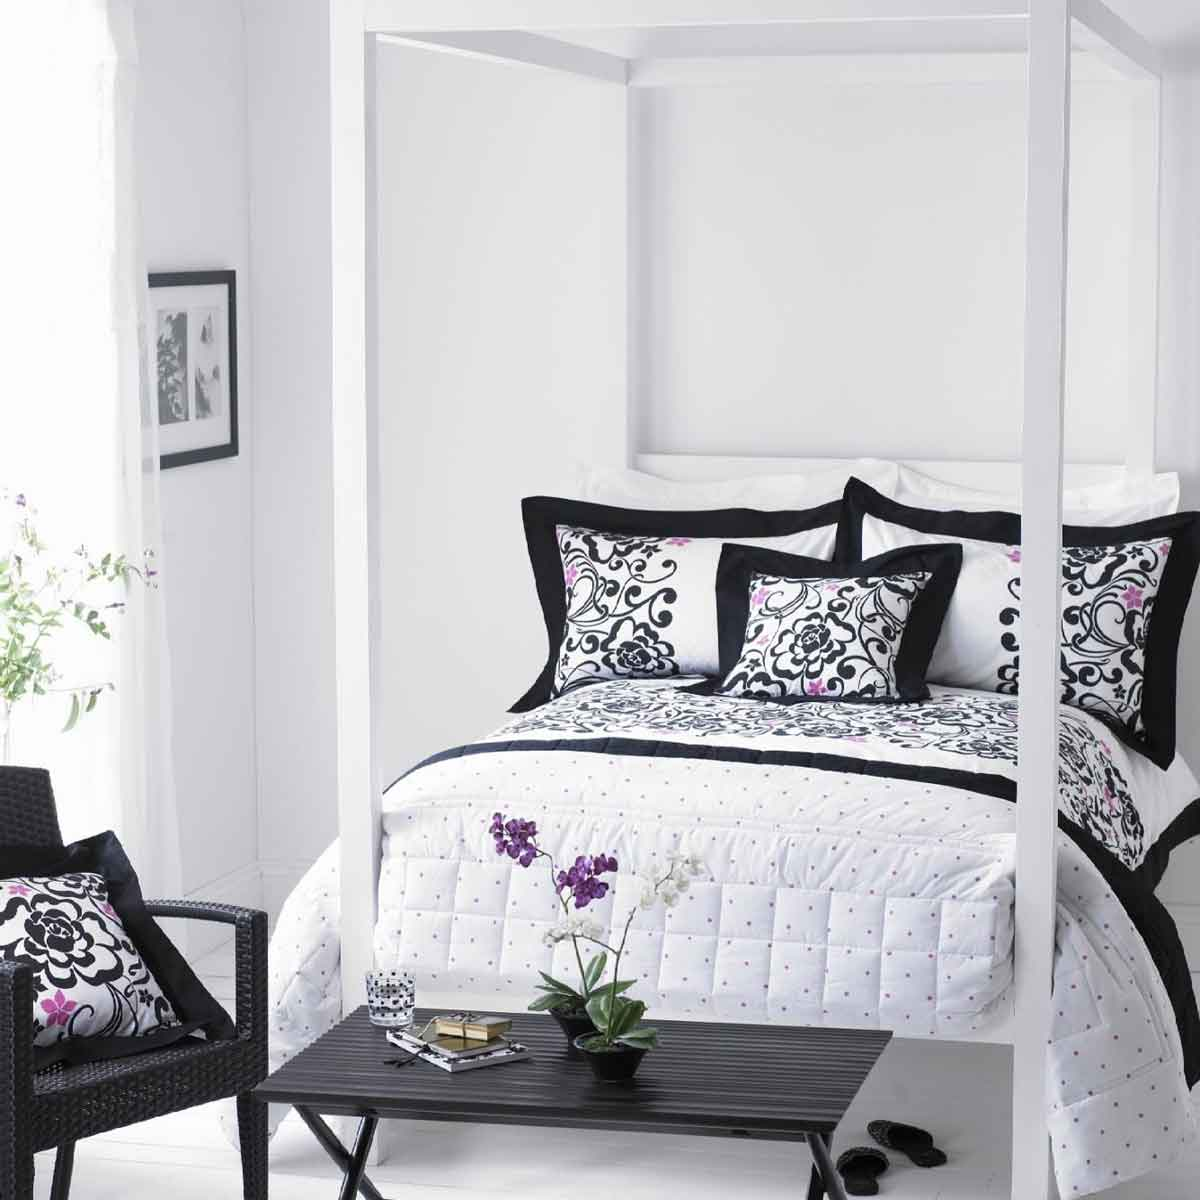 Black And White Bedroom Decorating Ideas ...